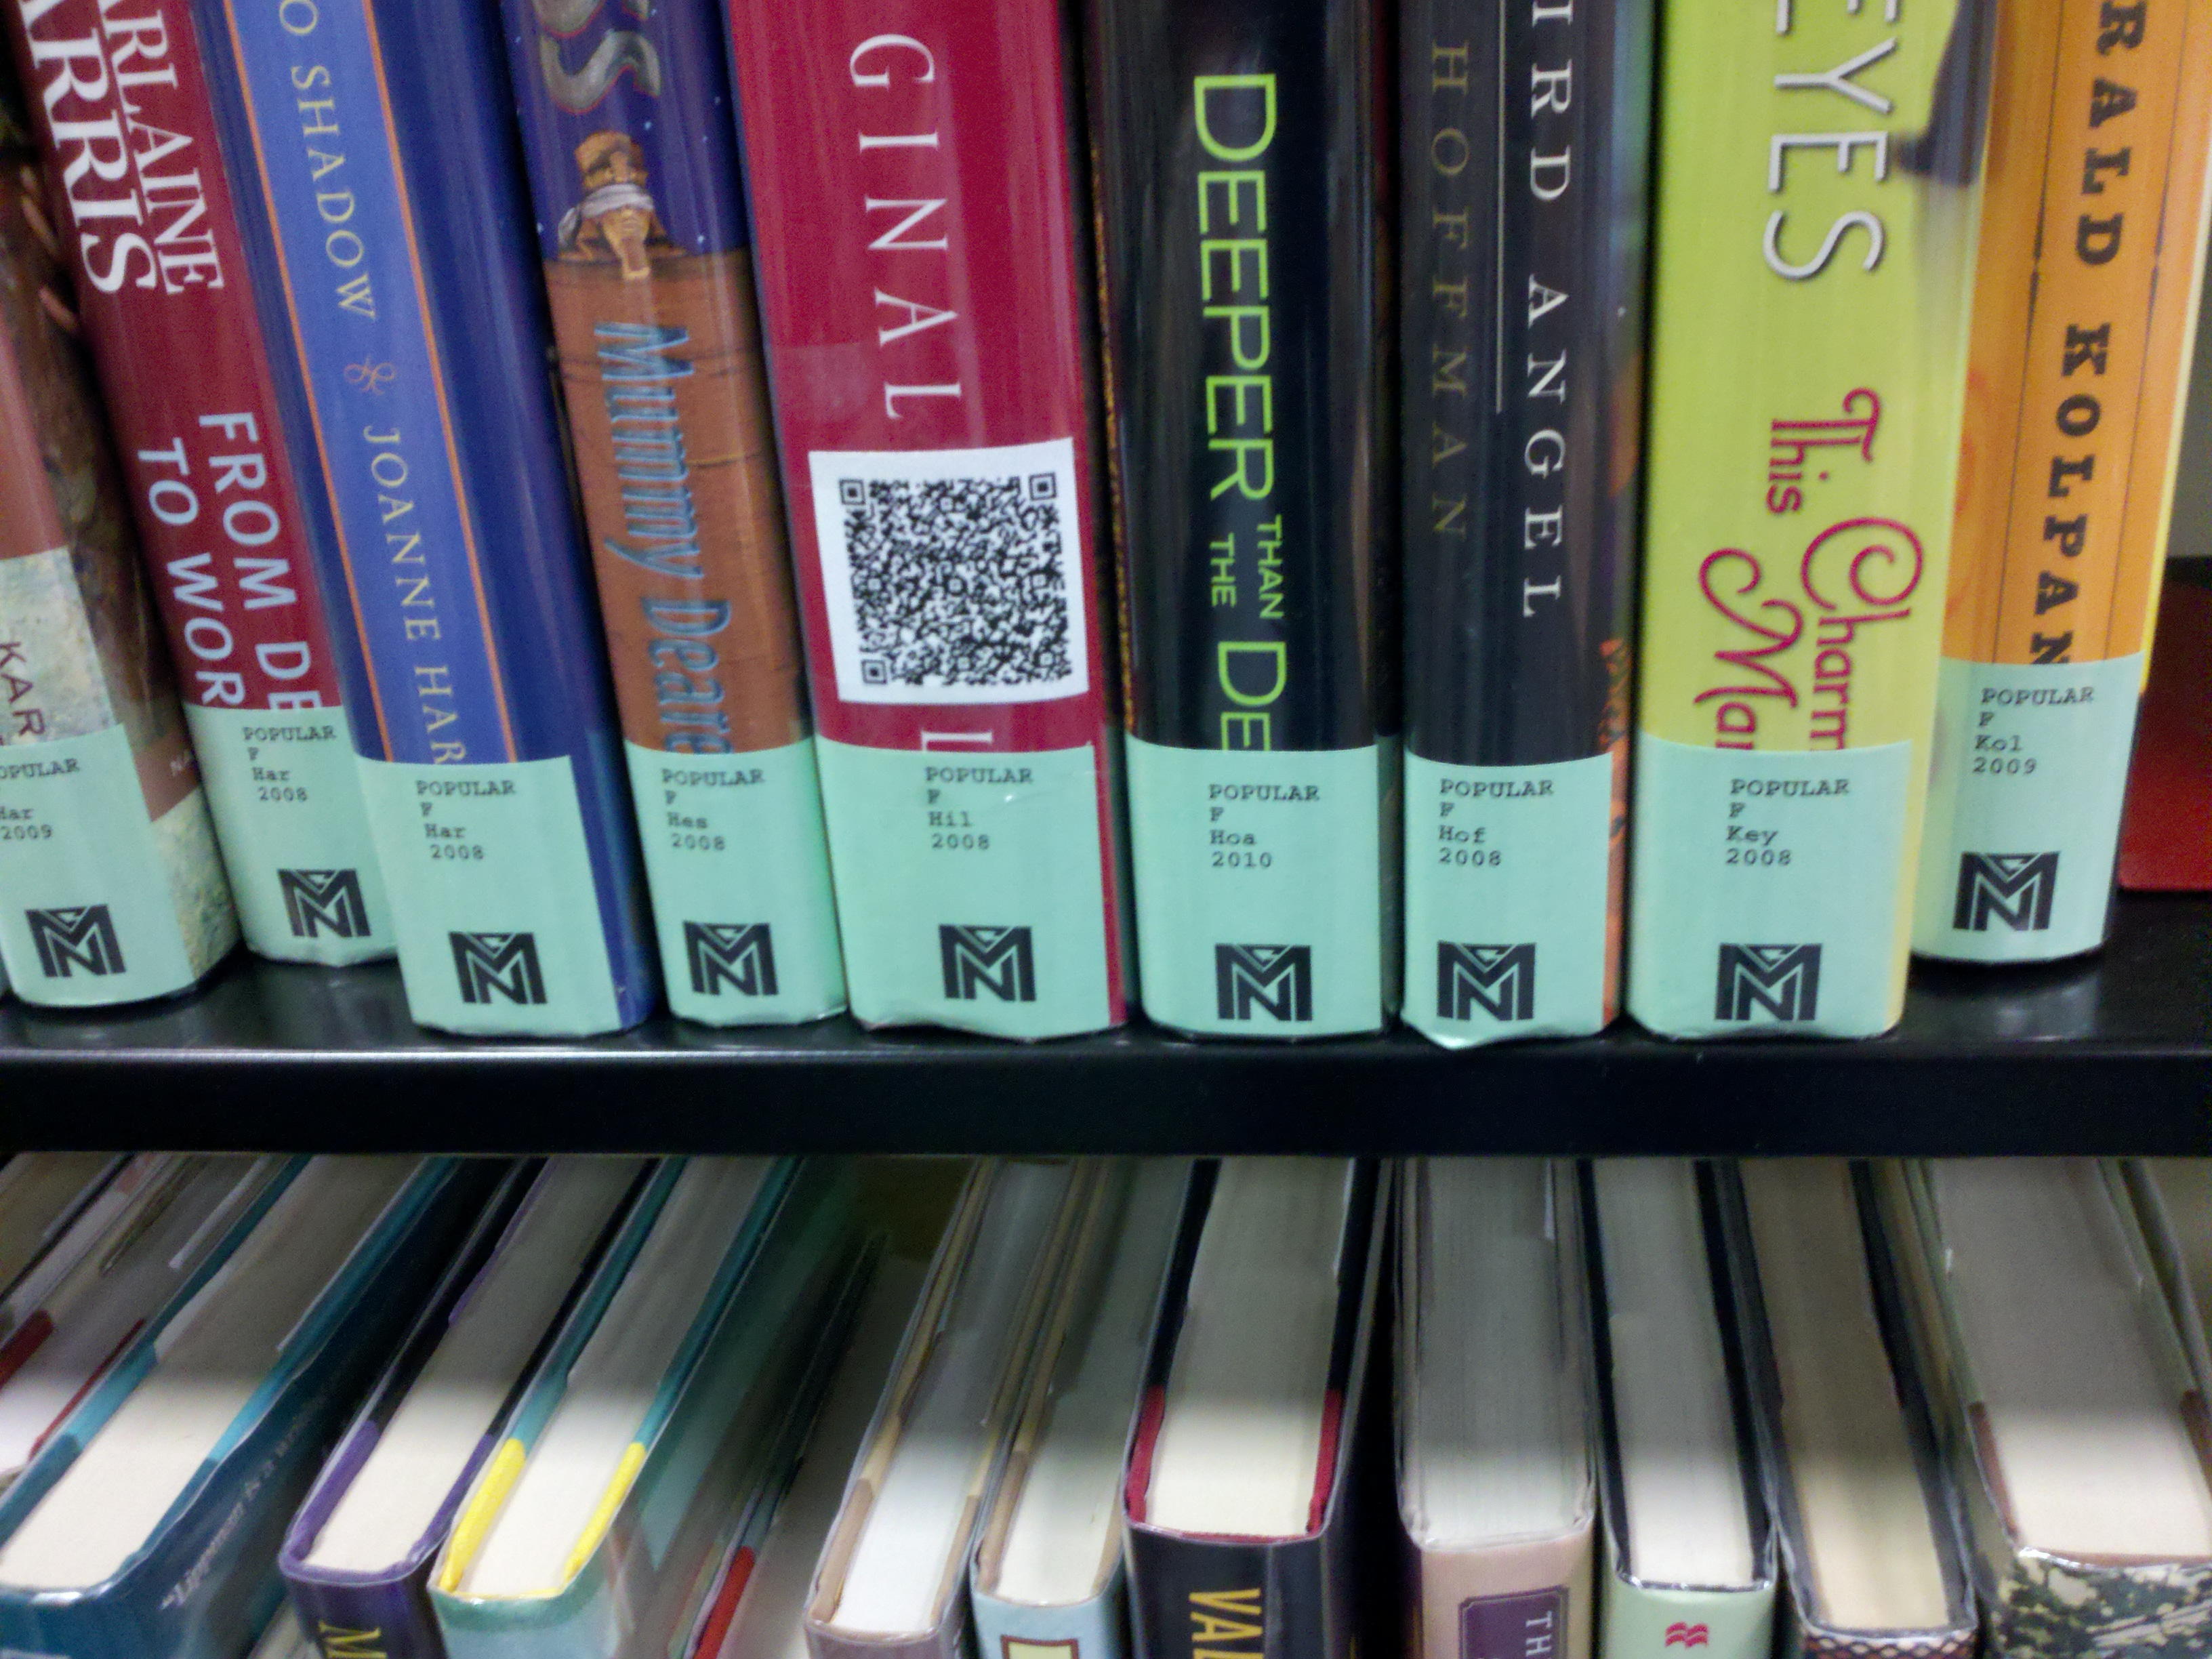 qr code on the spine of a book